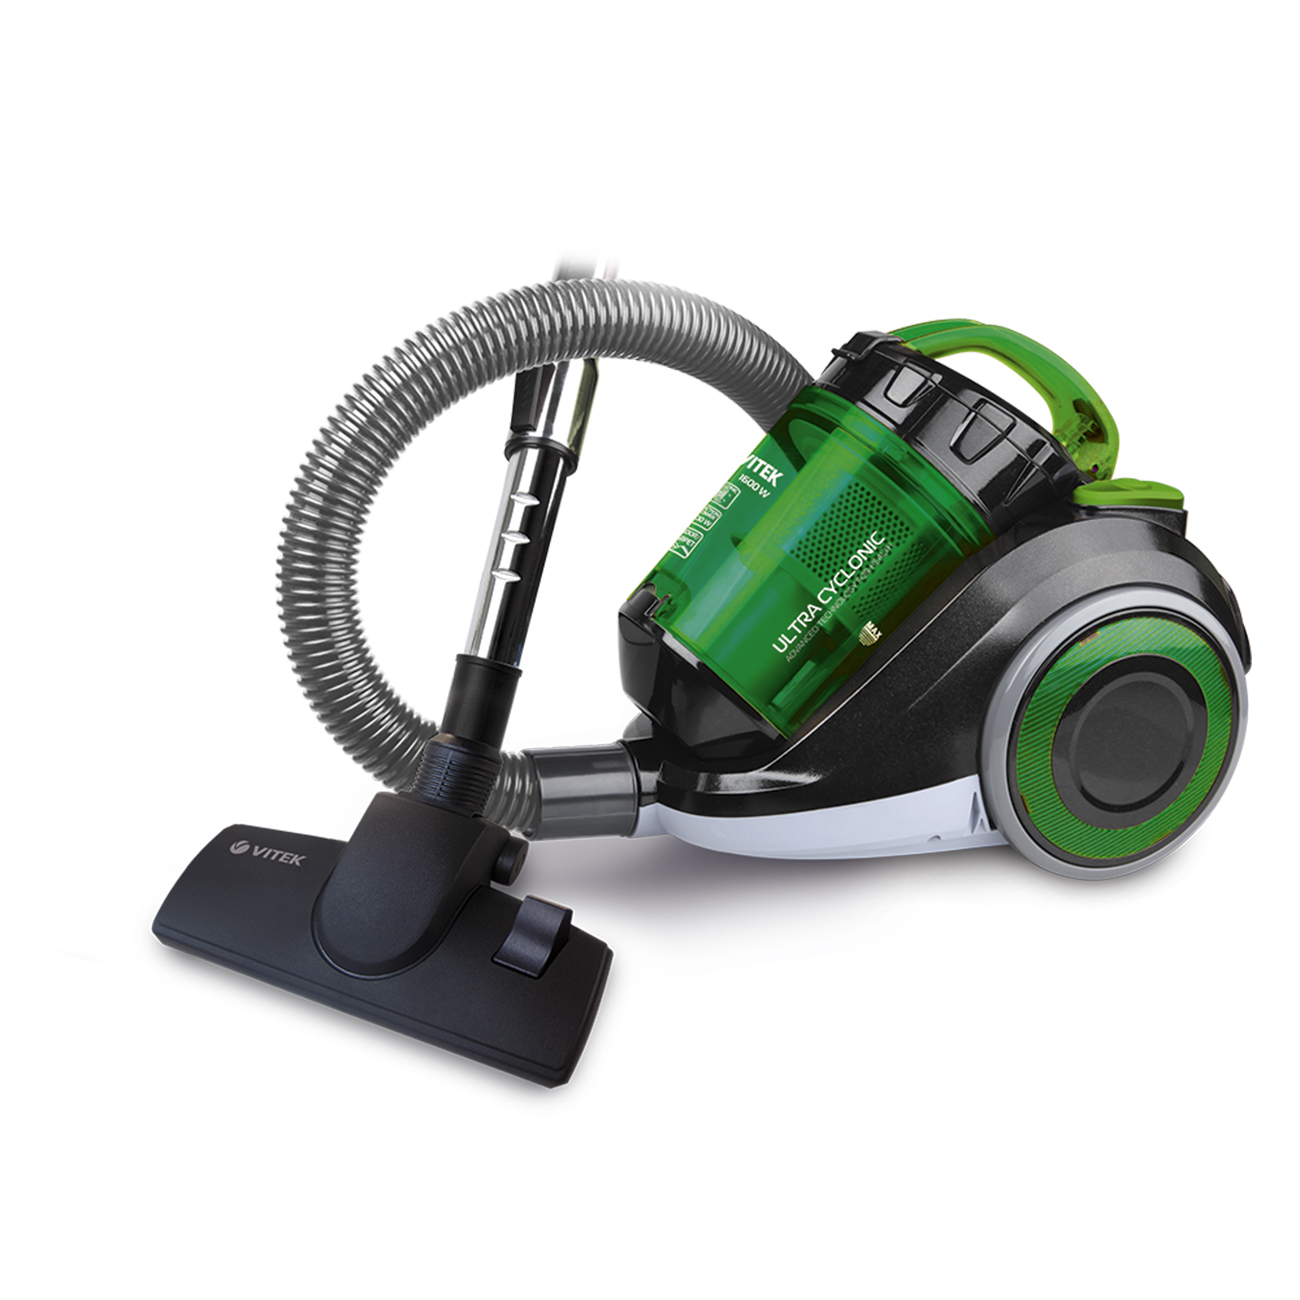 Vacuum cleaner electric Vitek VT-1815 G (Bagless, power 1600 W, container capacity 1.5 l, cyclone filter, cord length 5 m)